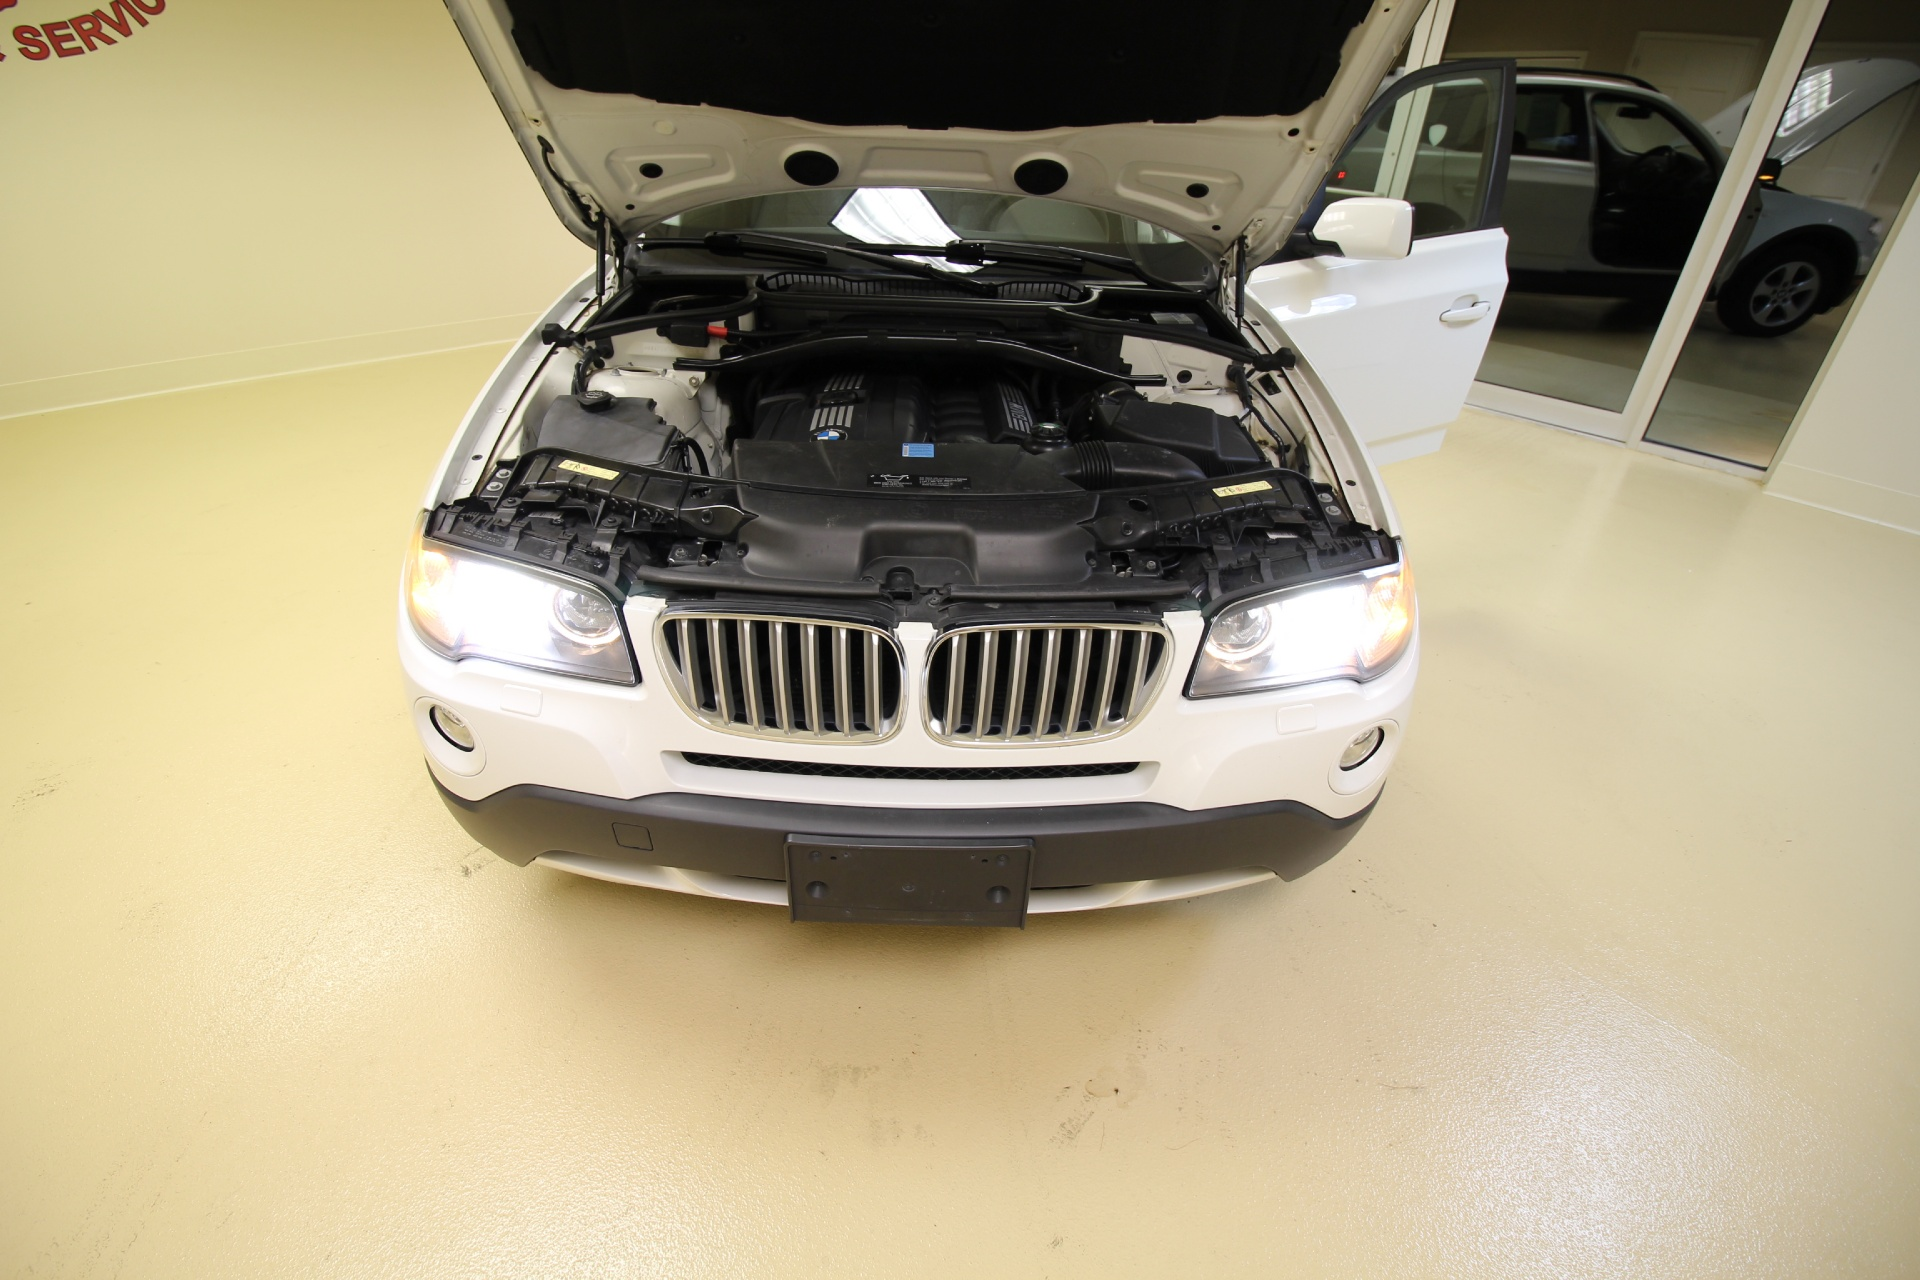 Used 2007 BMW X3 3.0si LOADED,PREMIUM+COLD WTHR PKGS,HID XENON HEADLIGHTS+++ | Albany, NY